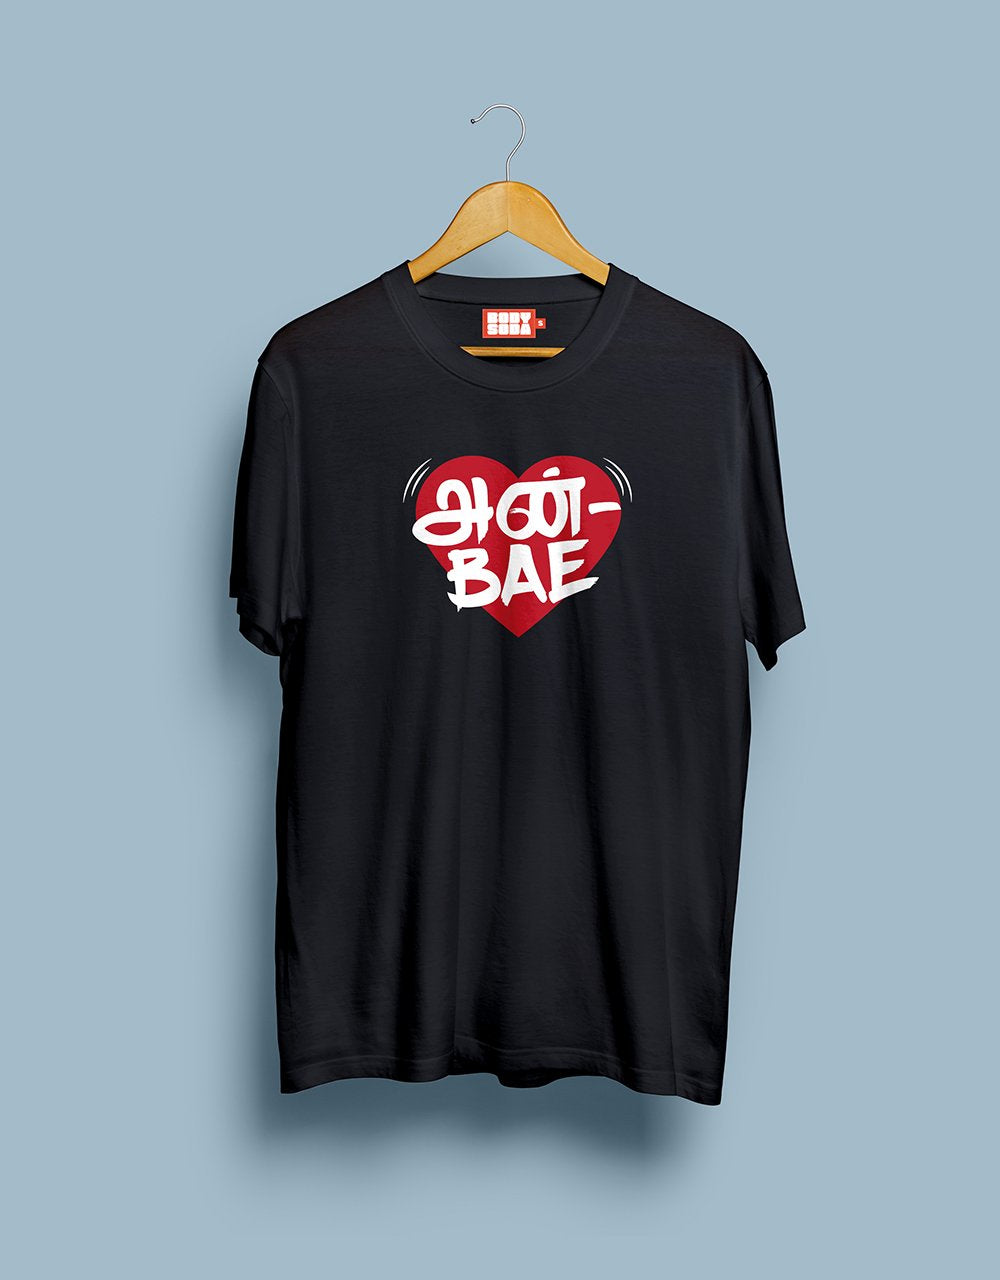 ANBAE | BODYSODA | COUPLE T-SHIRT